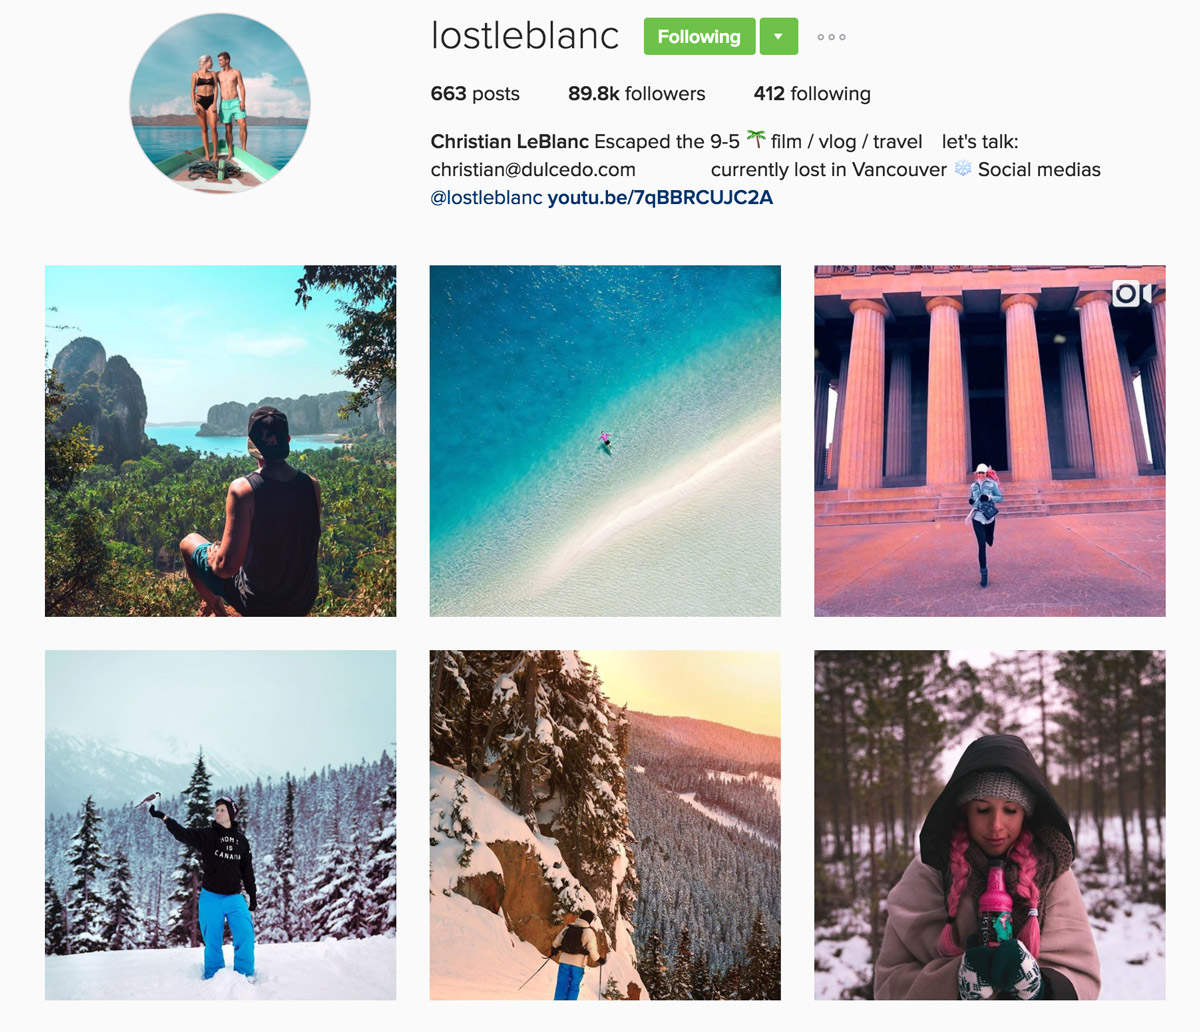 Travel-Instagram-Lost-Leblanc